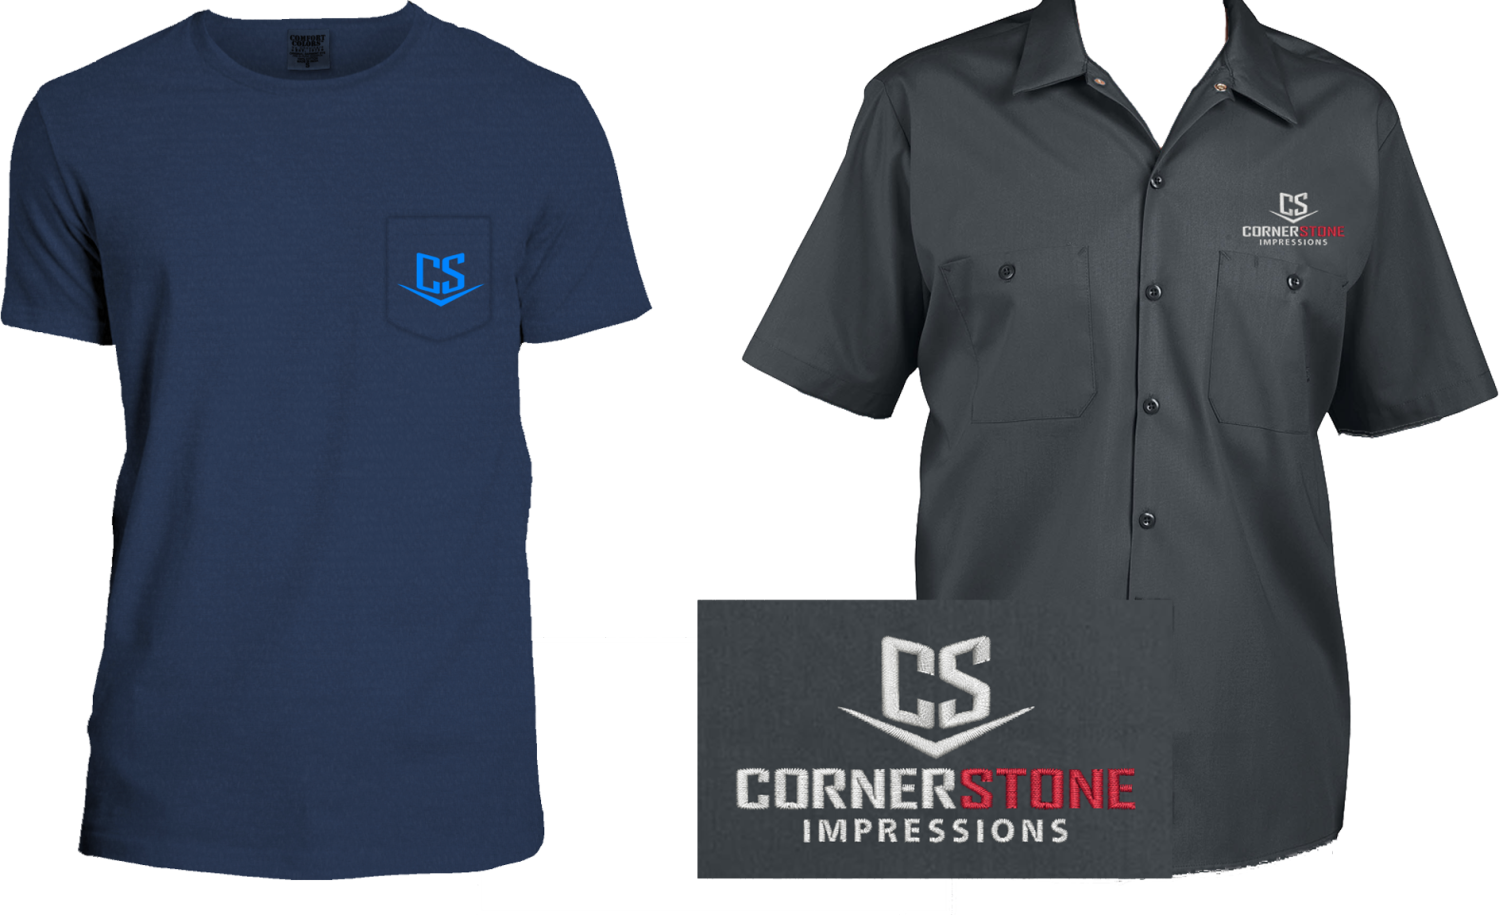 CS Tee and Work Shirt